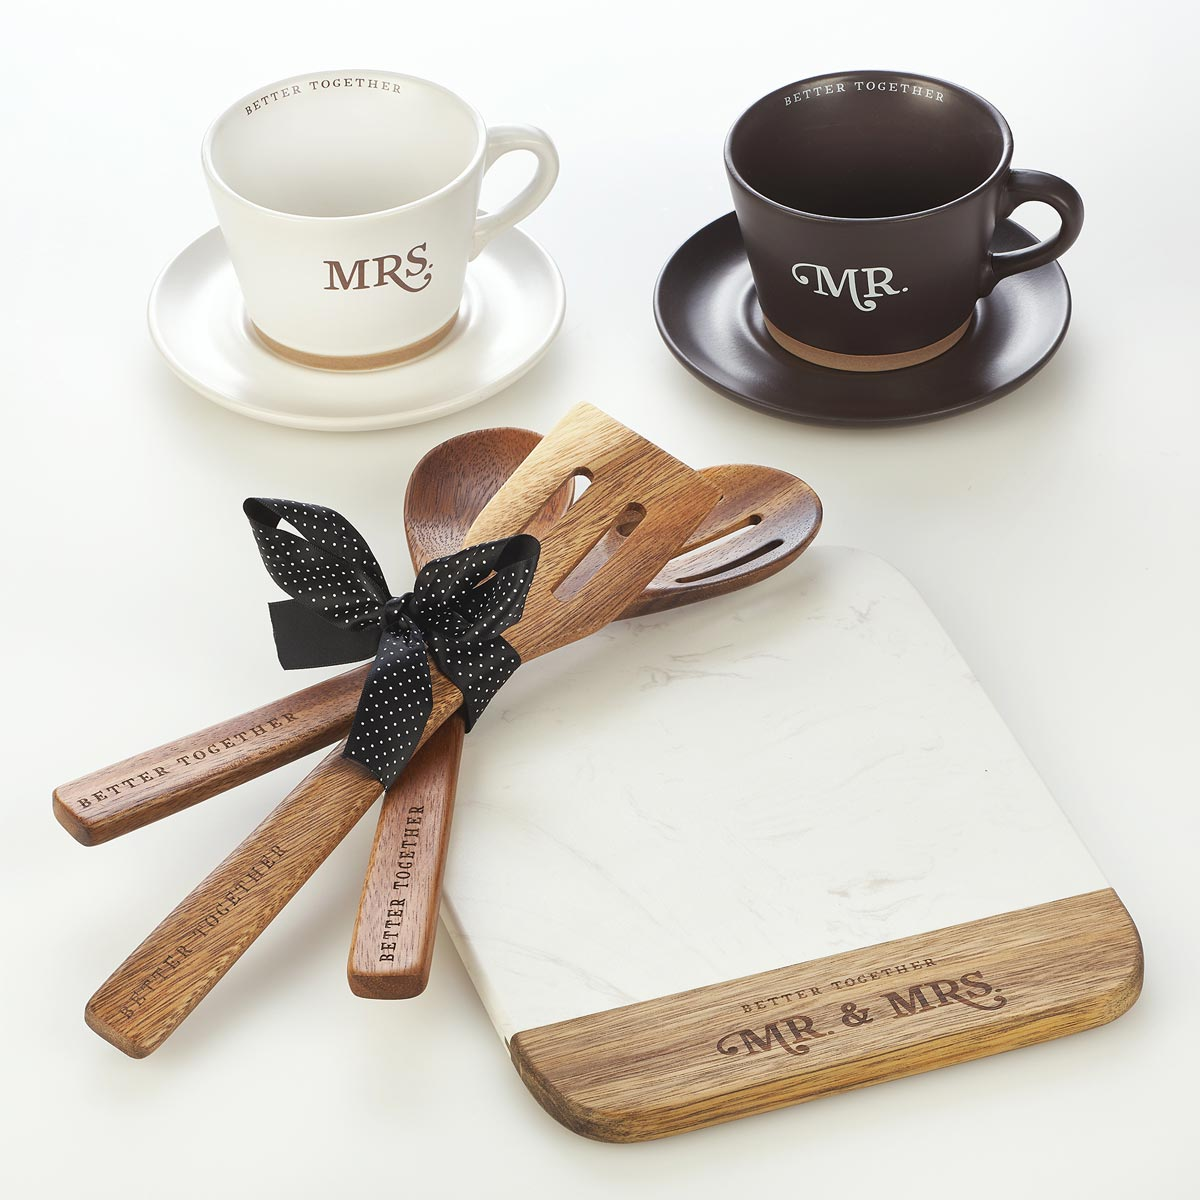 Inspirational Gifts Mr. and Mrs. Gift Set, $49.99